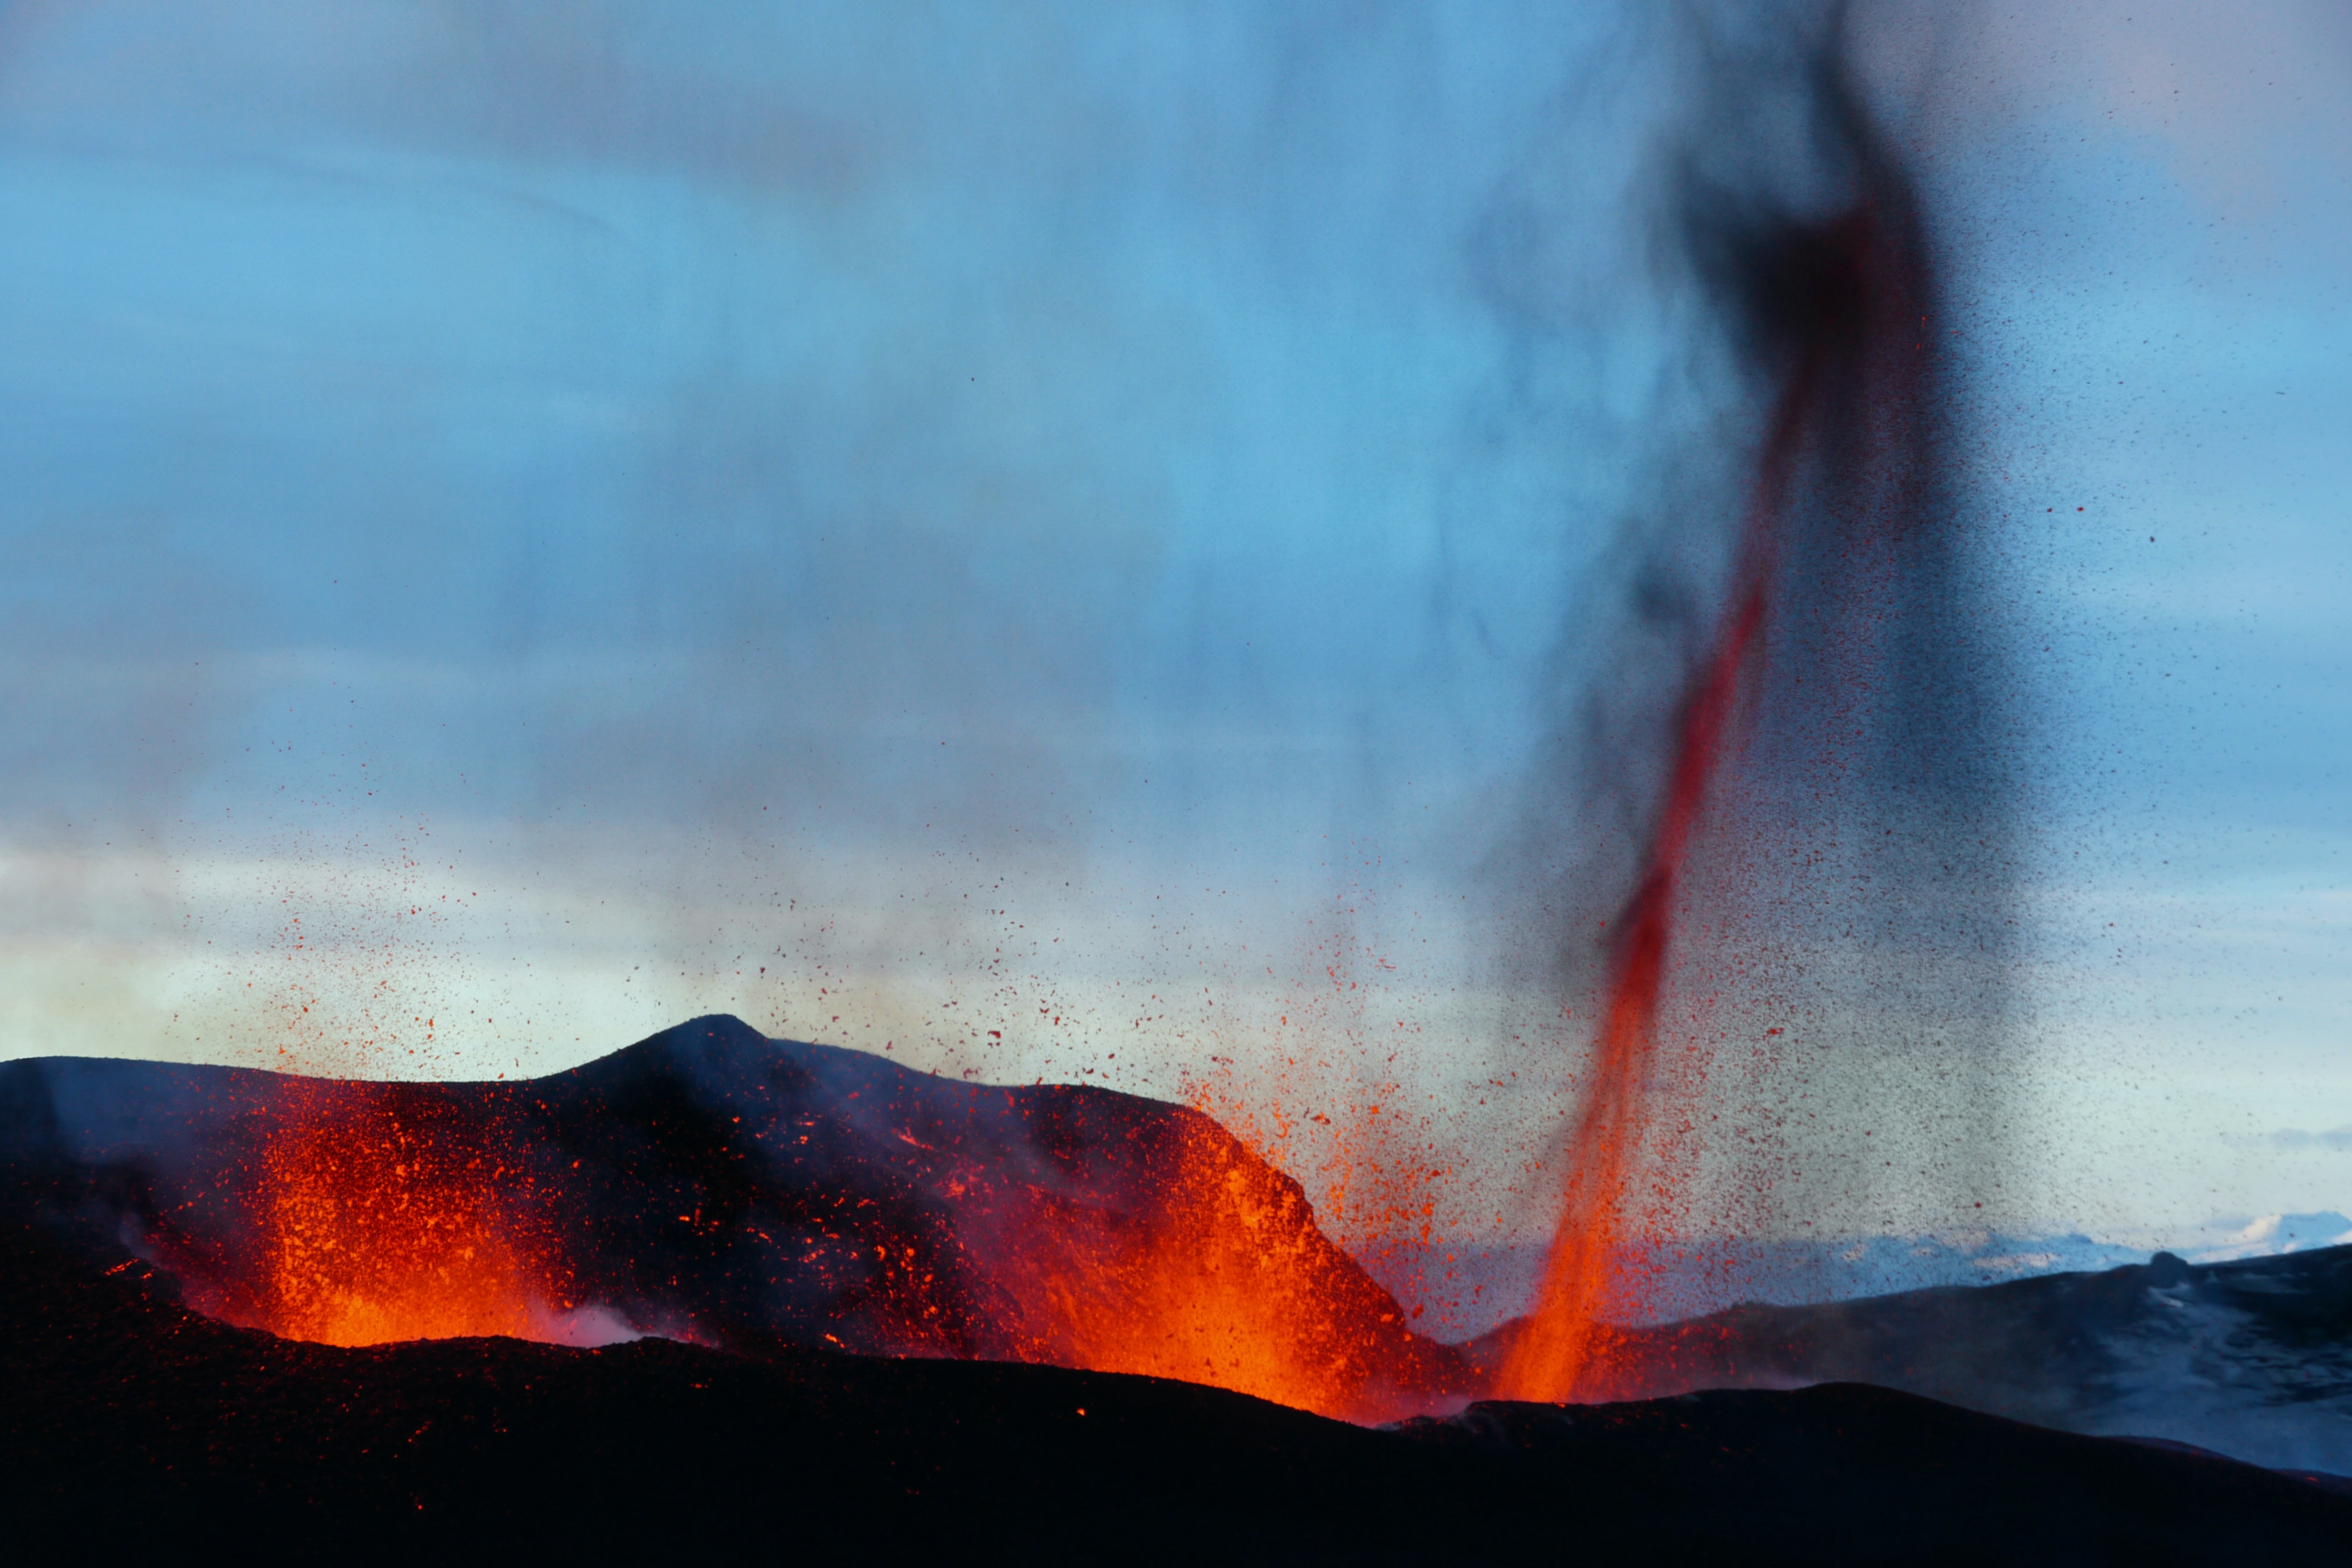 scenery of volcanic eruption